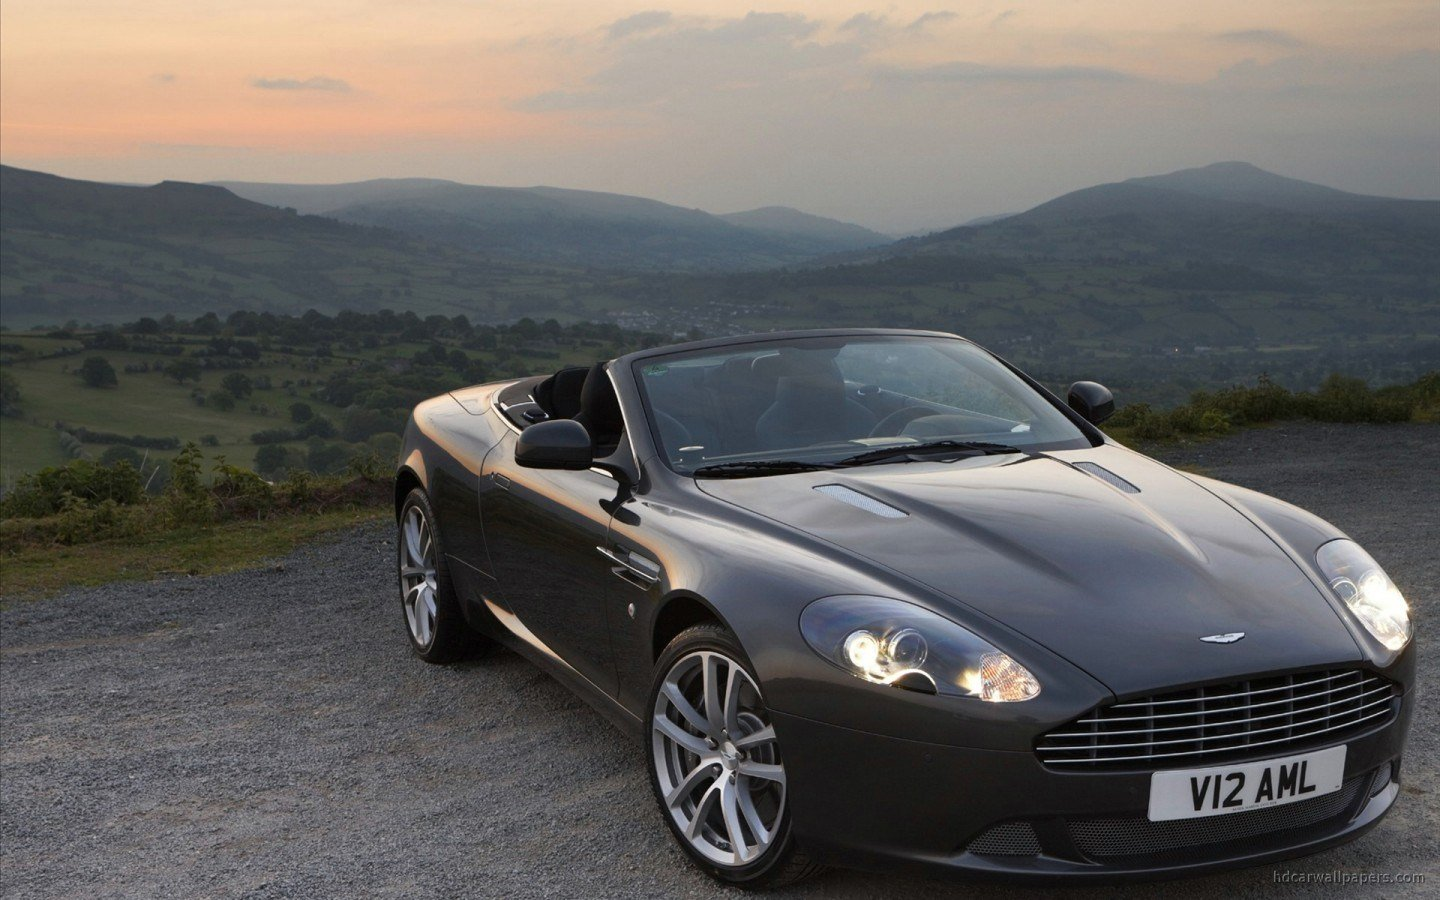 Latest 2011 Aston Martin Db9 Wallpaper Hd Car Wallpapers Id 1716 Free Download